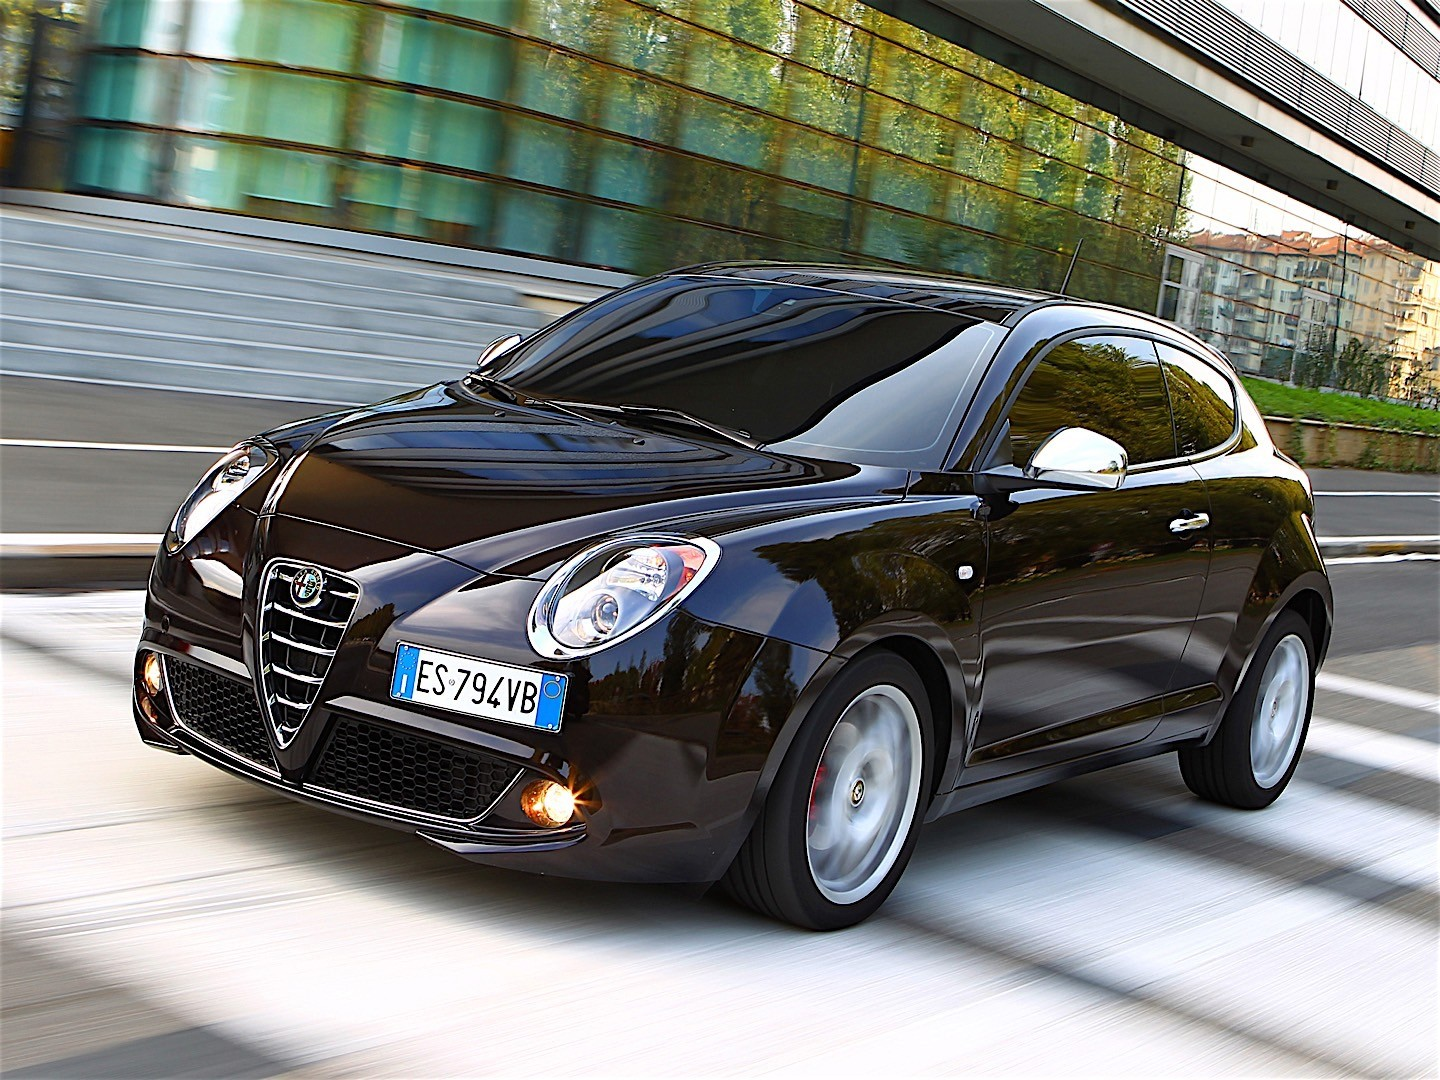 alfa romeo mito specs 2013 2014 2015 2016 autoevolution. Black Bedroom Furniture Sets. Home Design Ideas